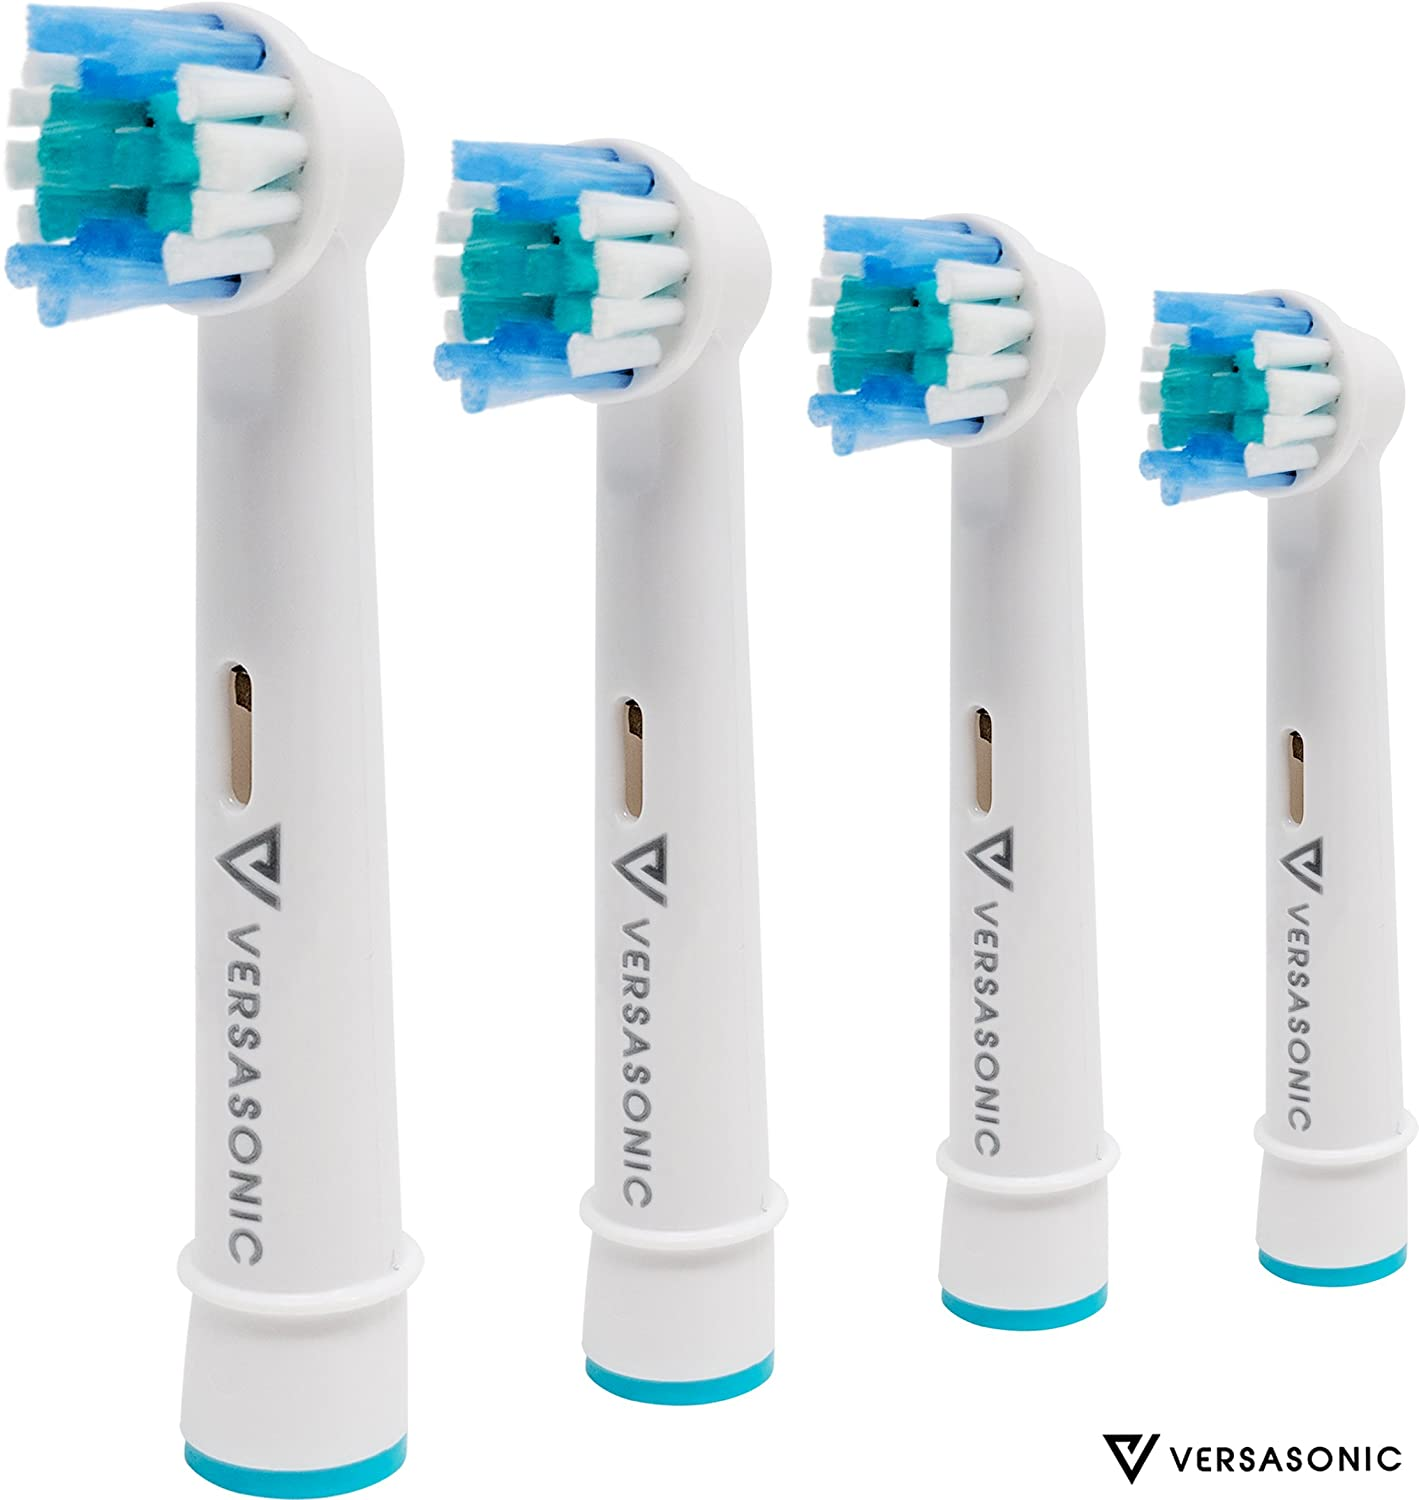 4 Pack of Premium Braun Oral B Replacement Toothbrush Heads by Versasonic Hybriel